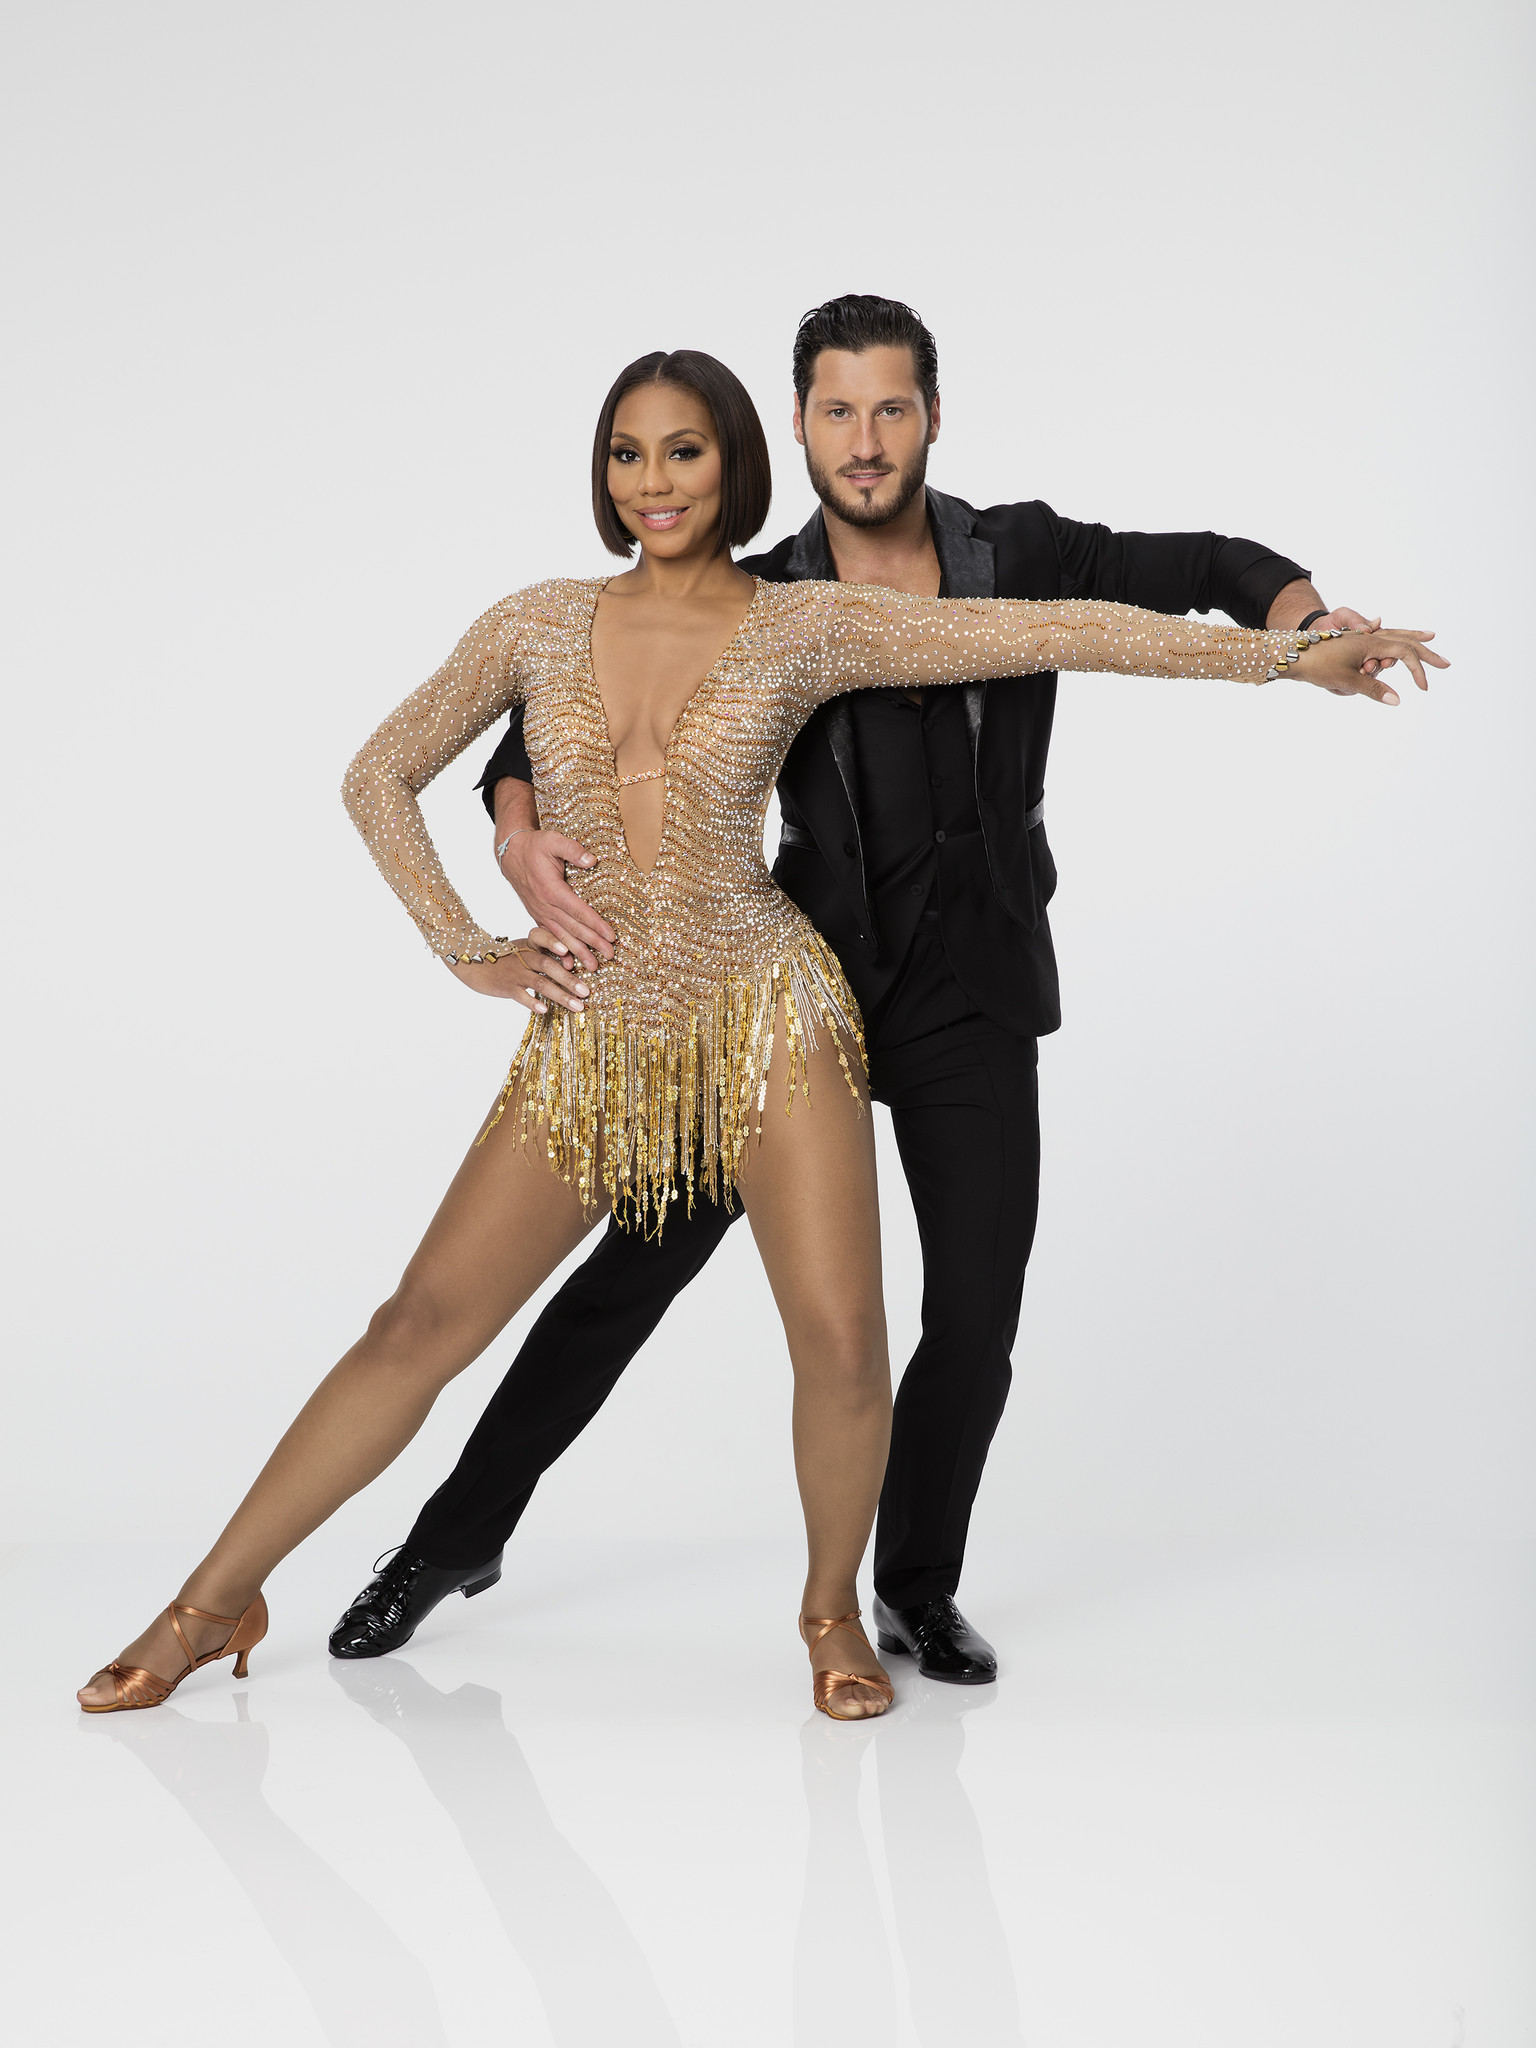 dancing with the stars - photo #10